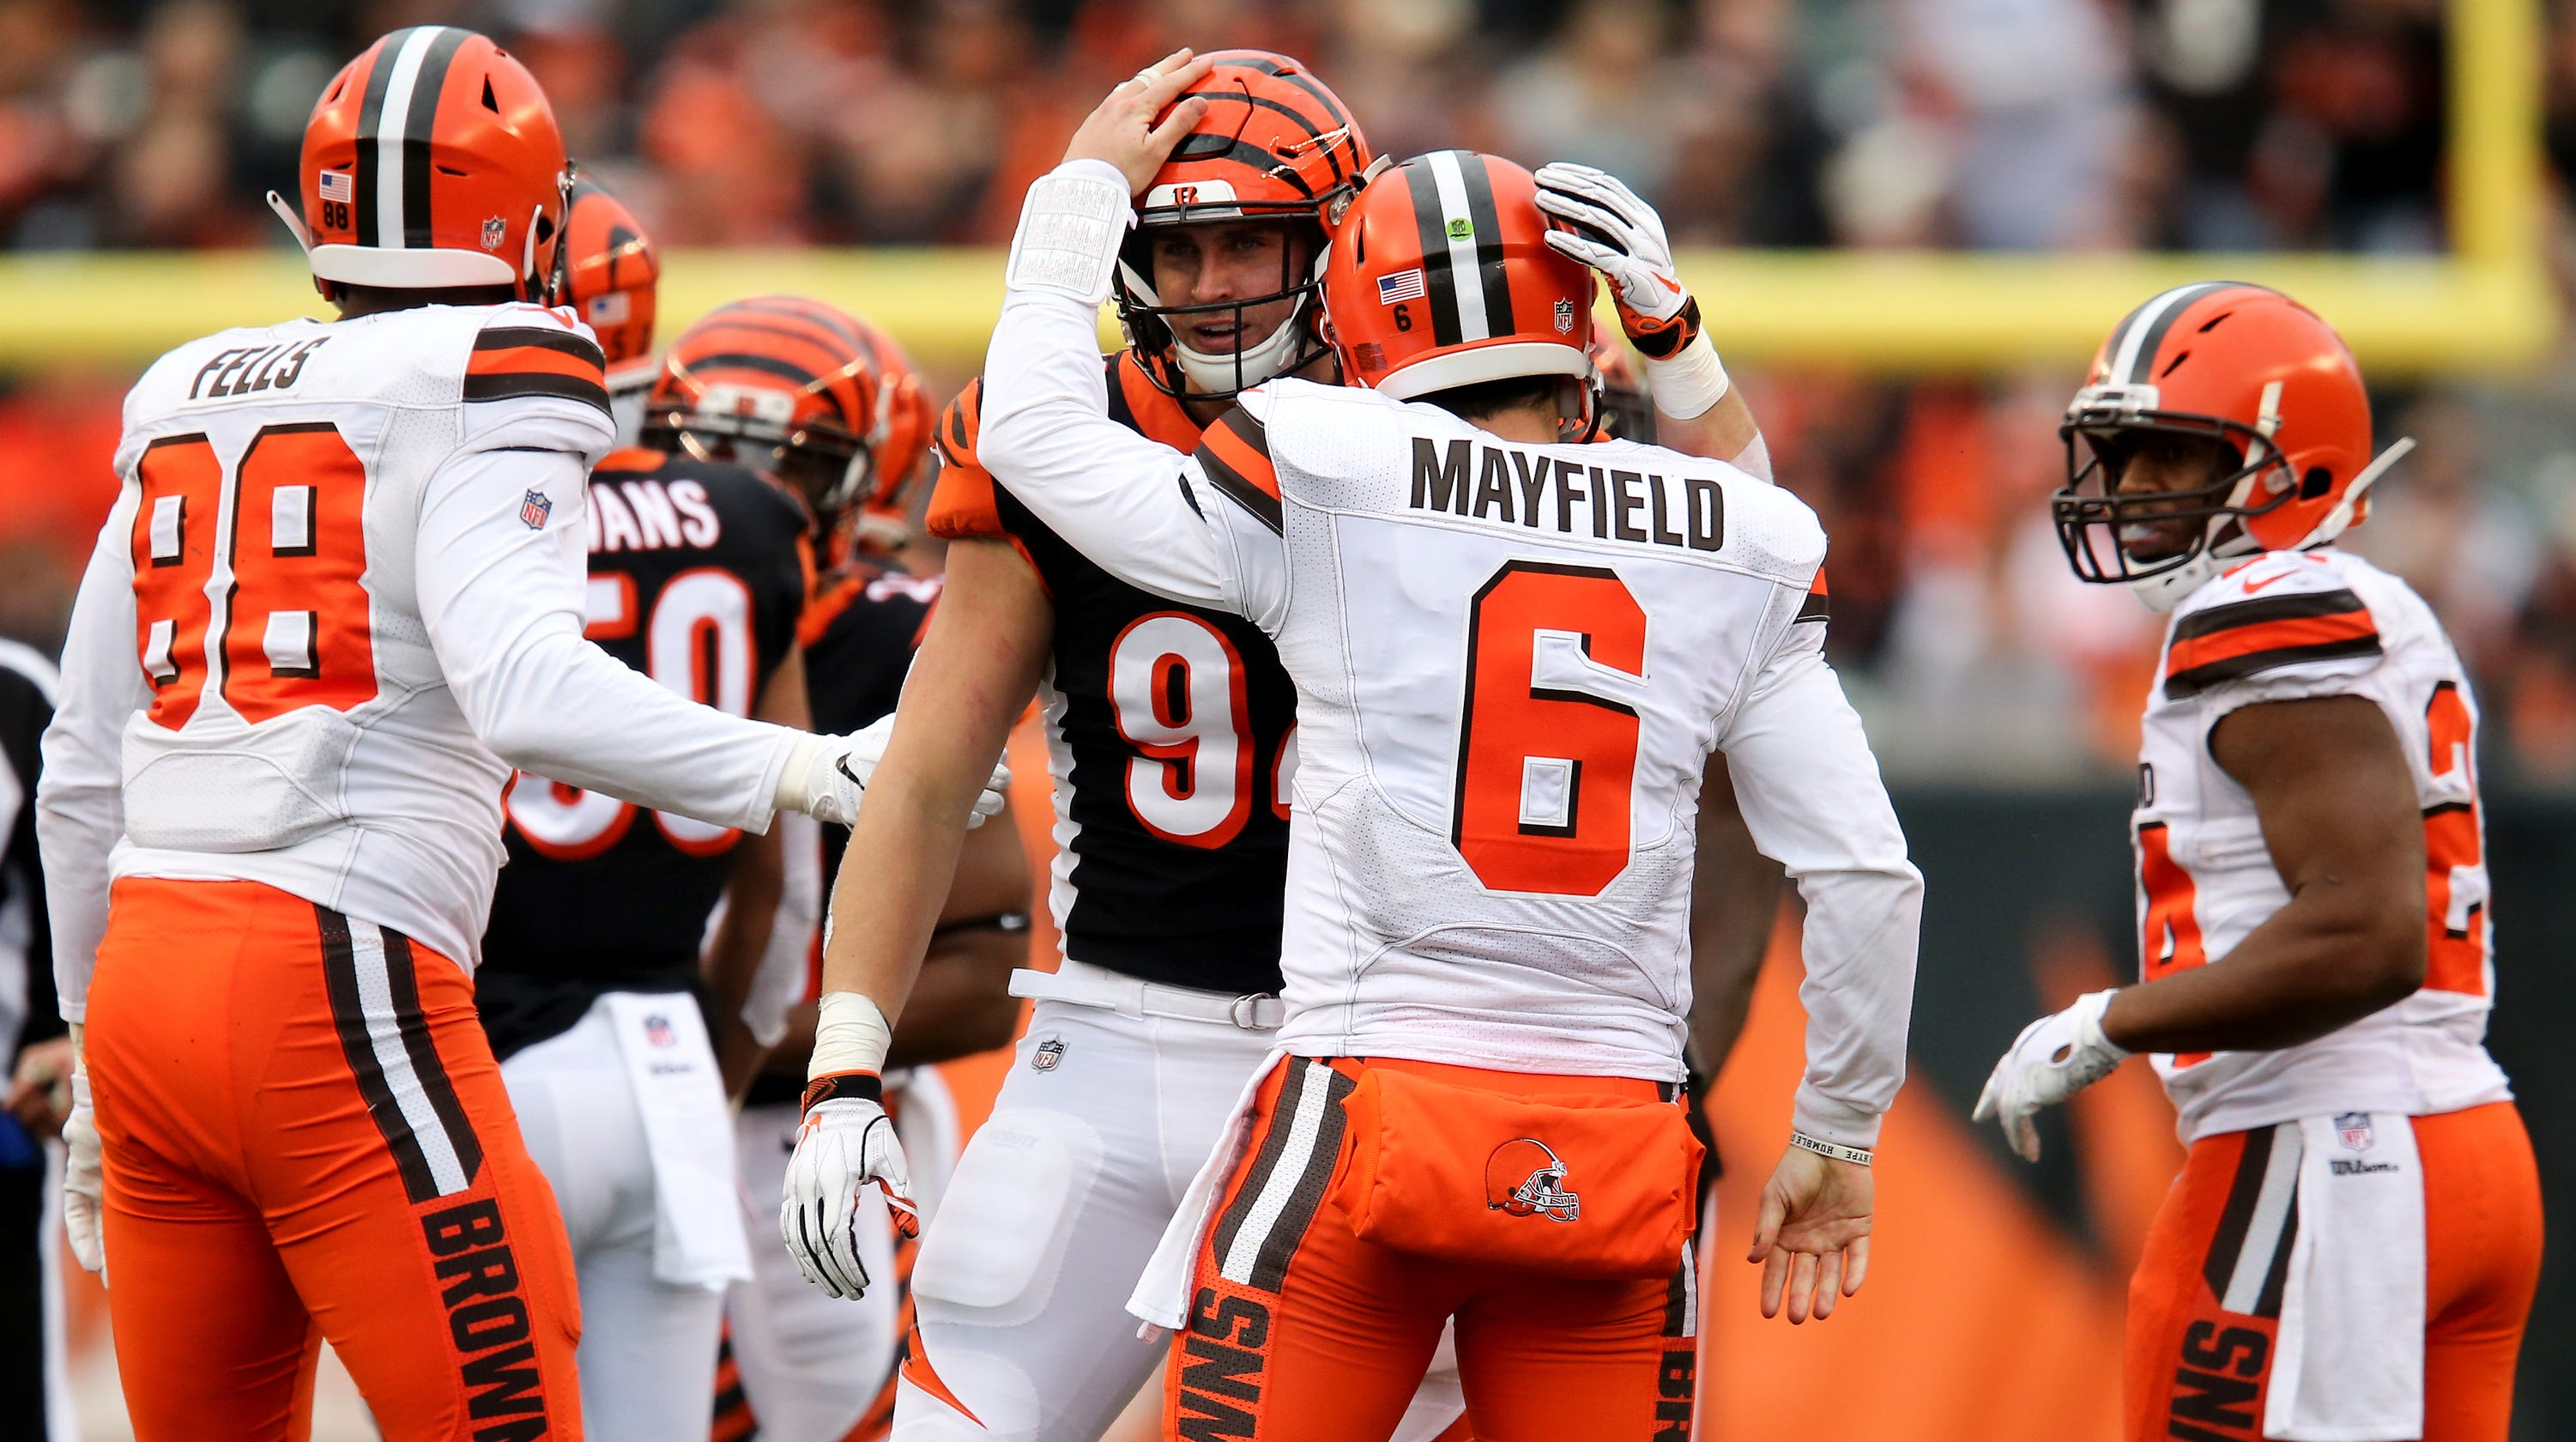 Browns QB Baker Mayfield   I m not looking for anybody s approval  9033570ba